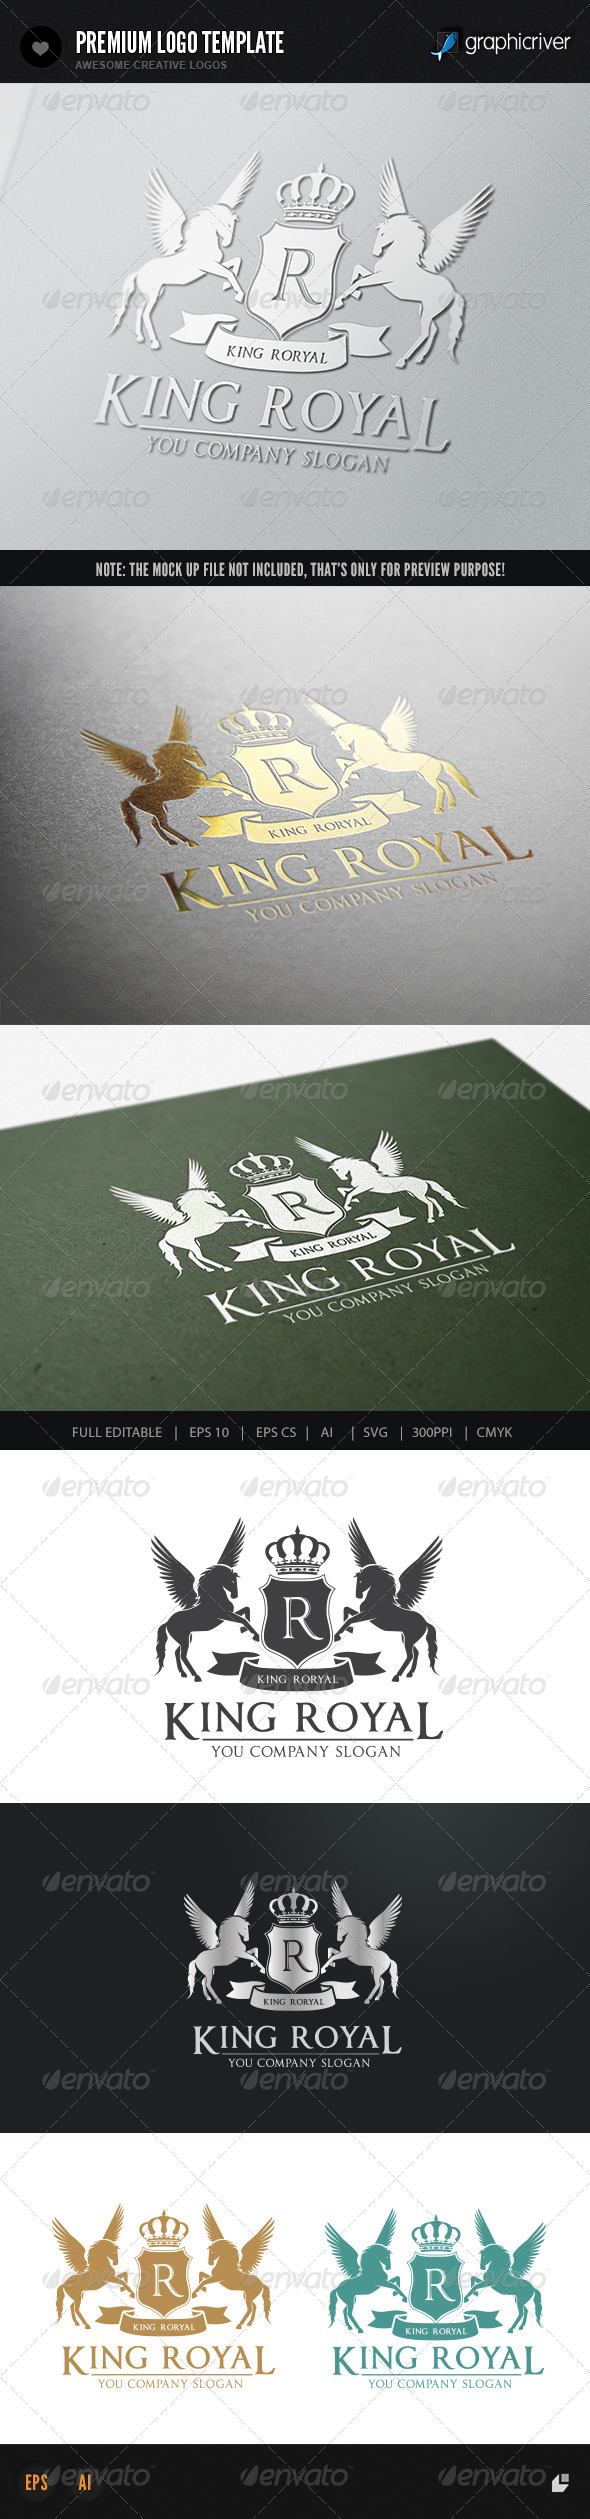 King Royal II